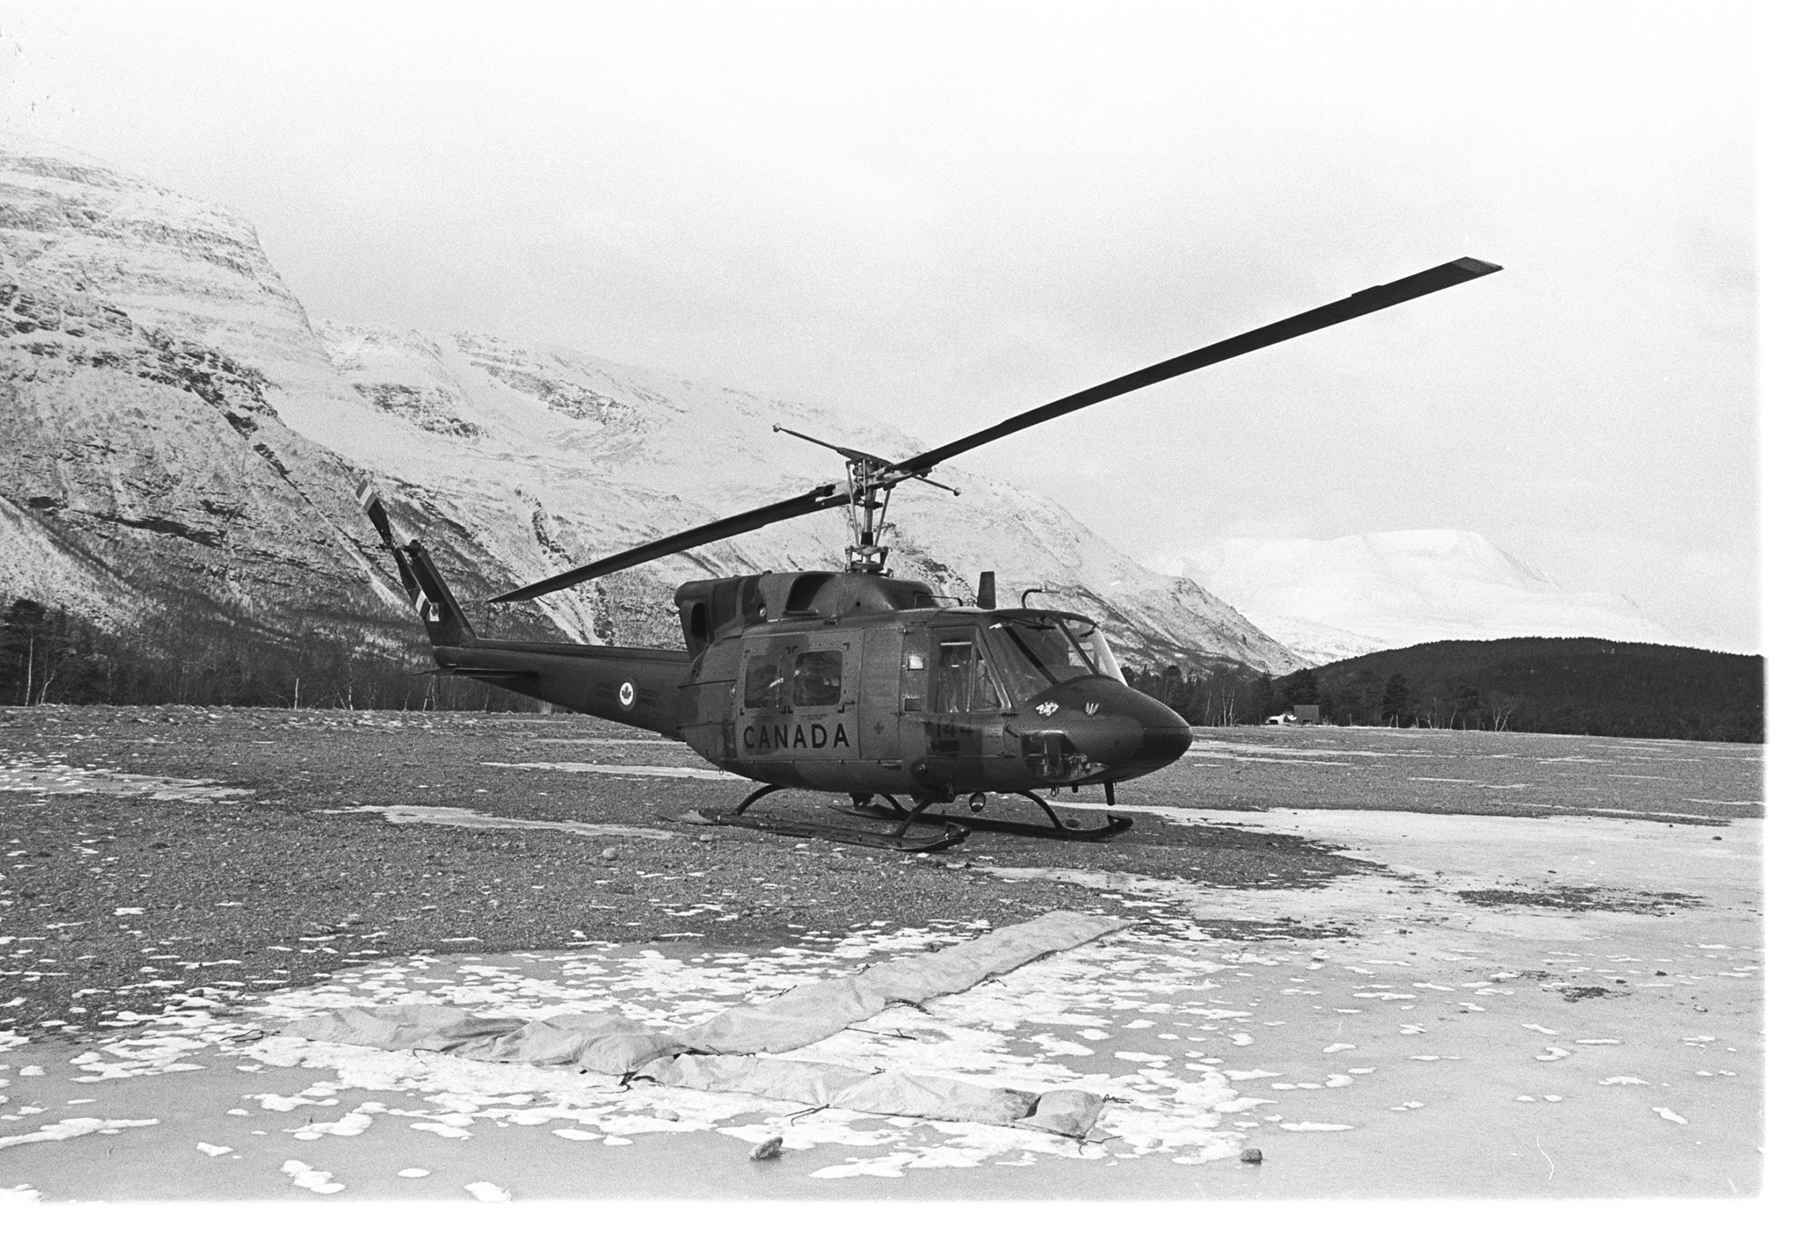 Deployed on Exercise Alloy Express, an RCAF CH-135 Twin Huey helicopter from 427 Squadron sits on an alpine lakeshore in the Norwegian mountains on March 15, 1982. PHOTO:  Sergeant J.C. Rodger, IS82-573